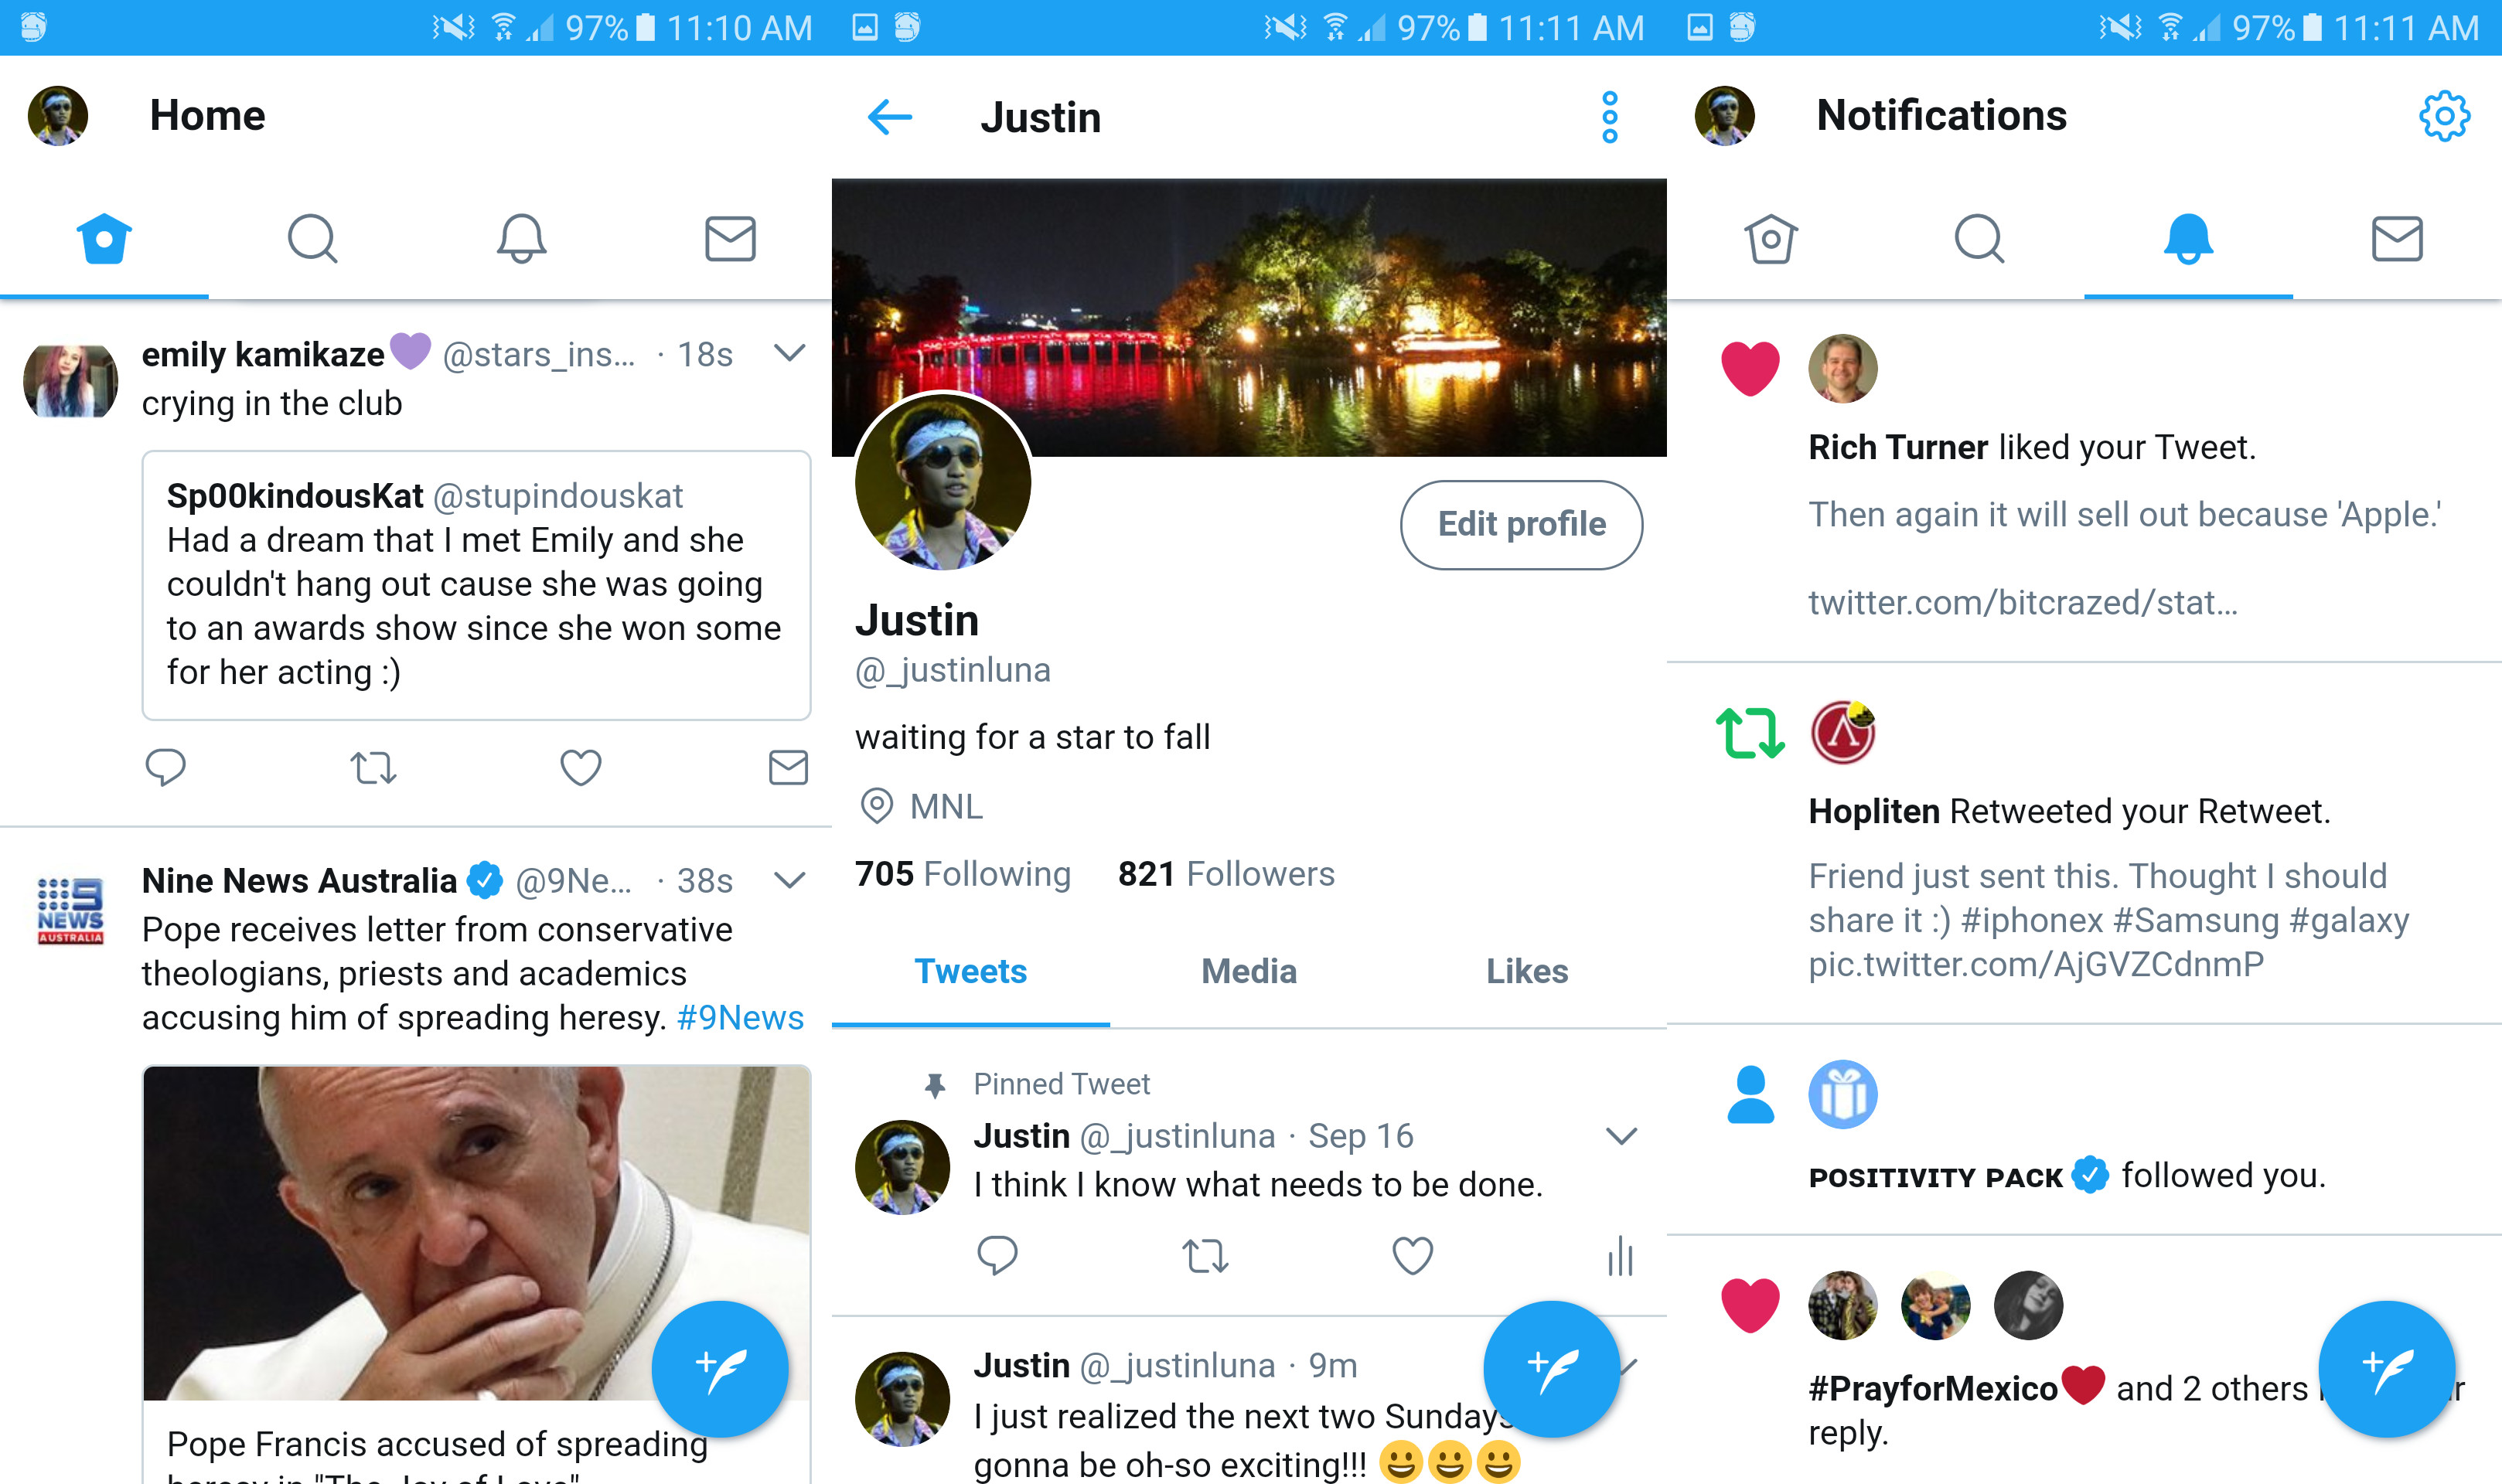 Twitter is field testing a lightweight app in the Philippines